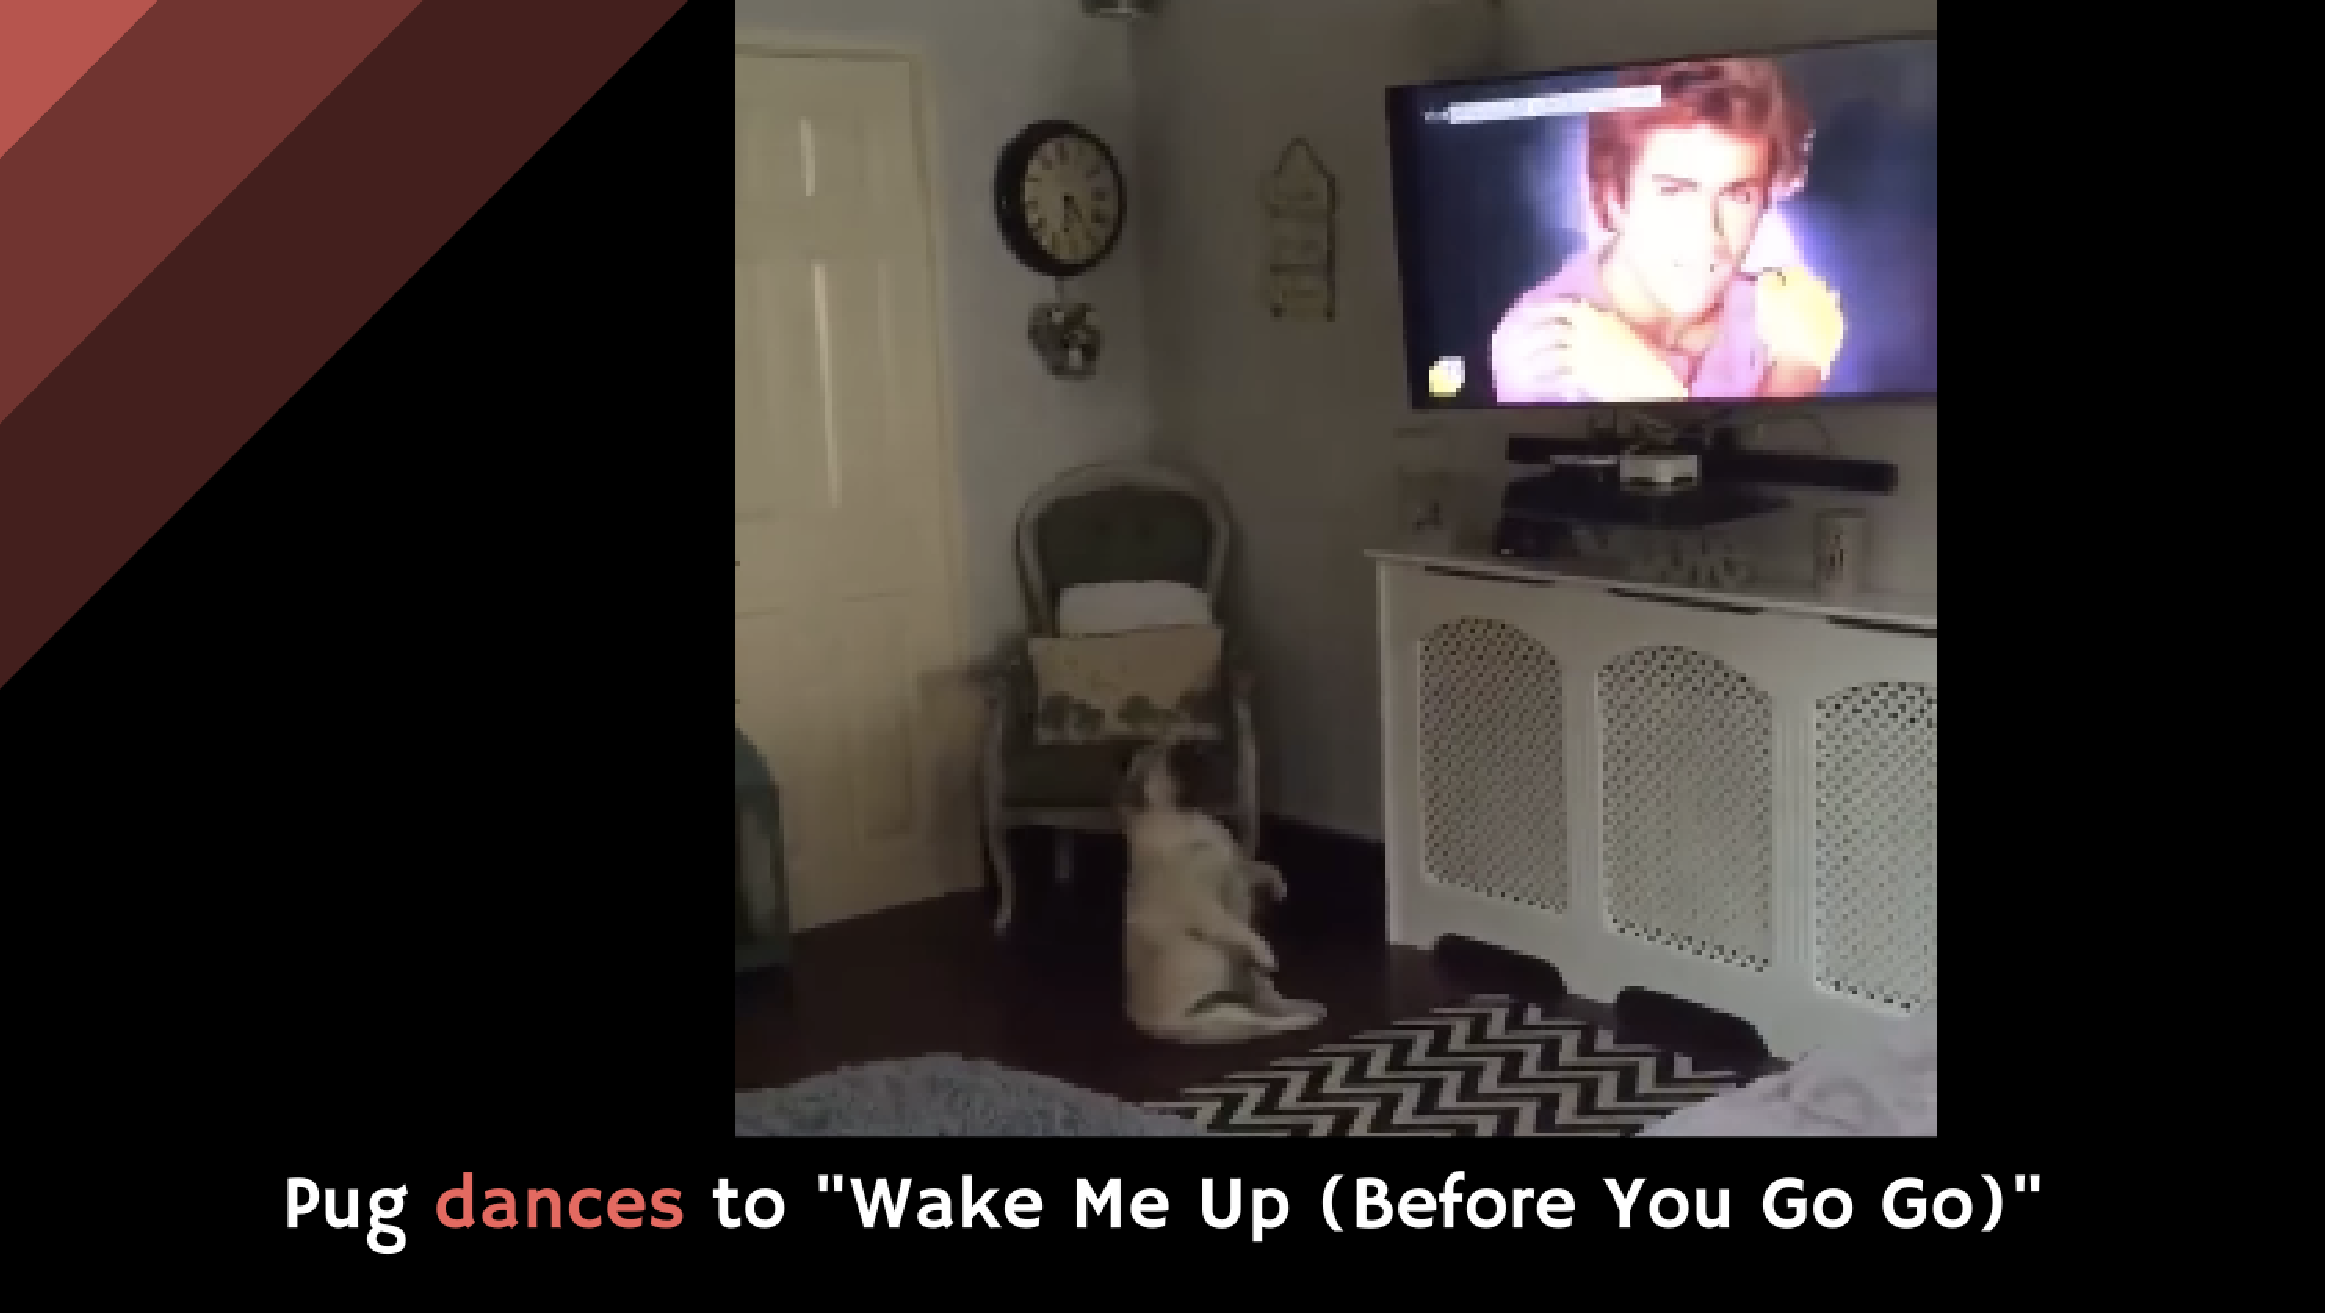 pug dancing to wham pug dances to quot wake me up before you go go quot alltop viral 7262